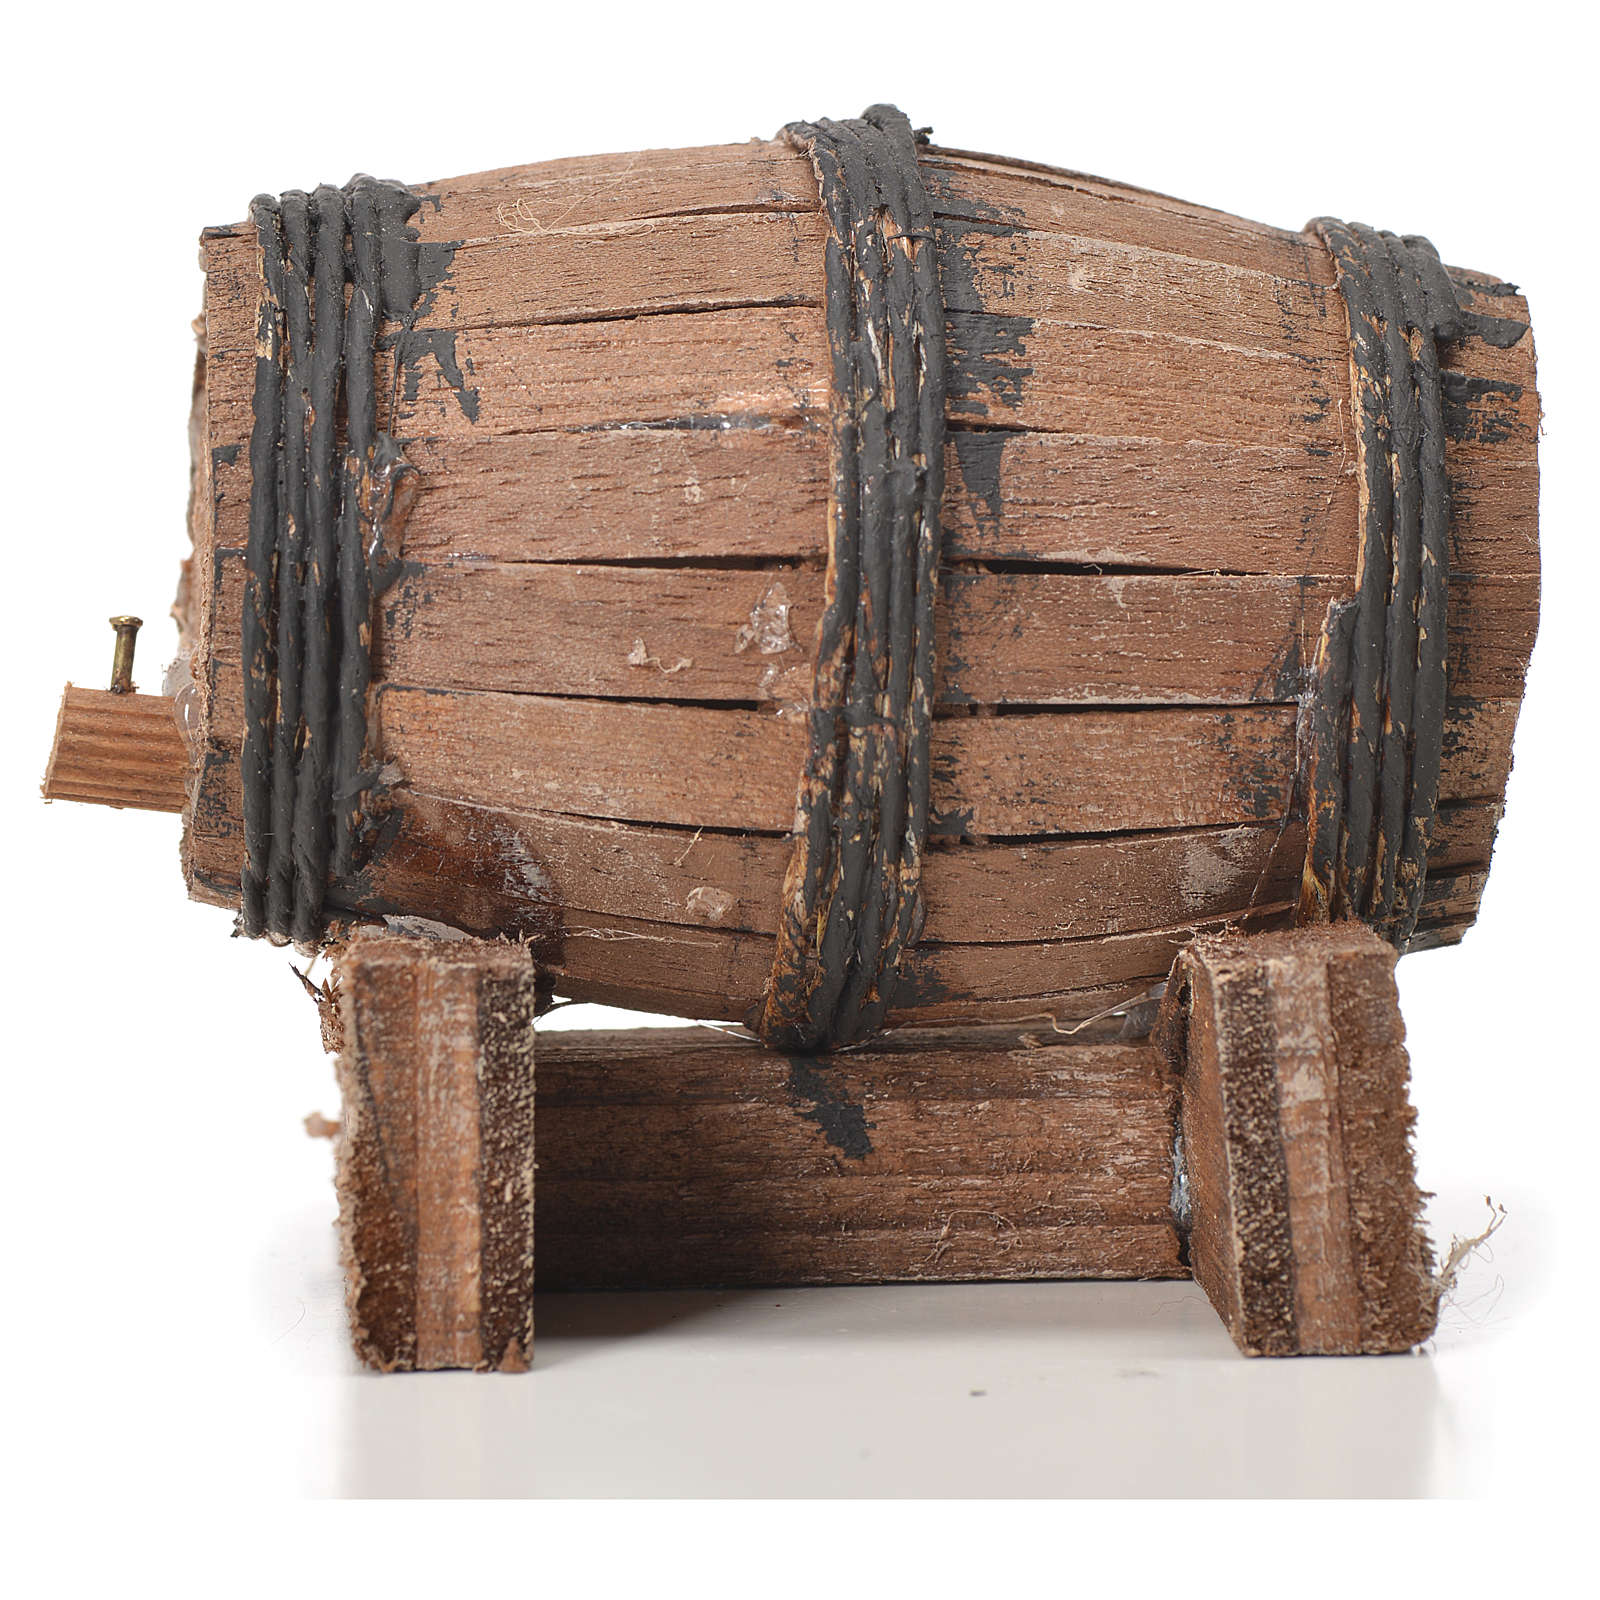 wooden barrel 7,5cm 4